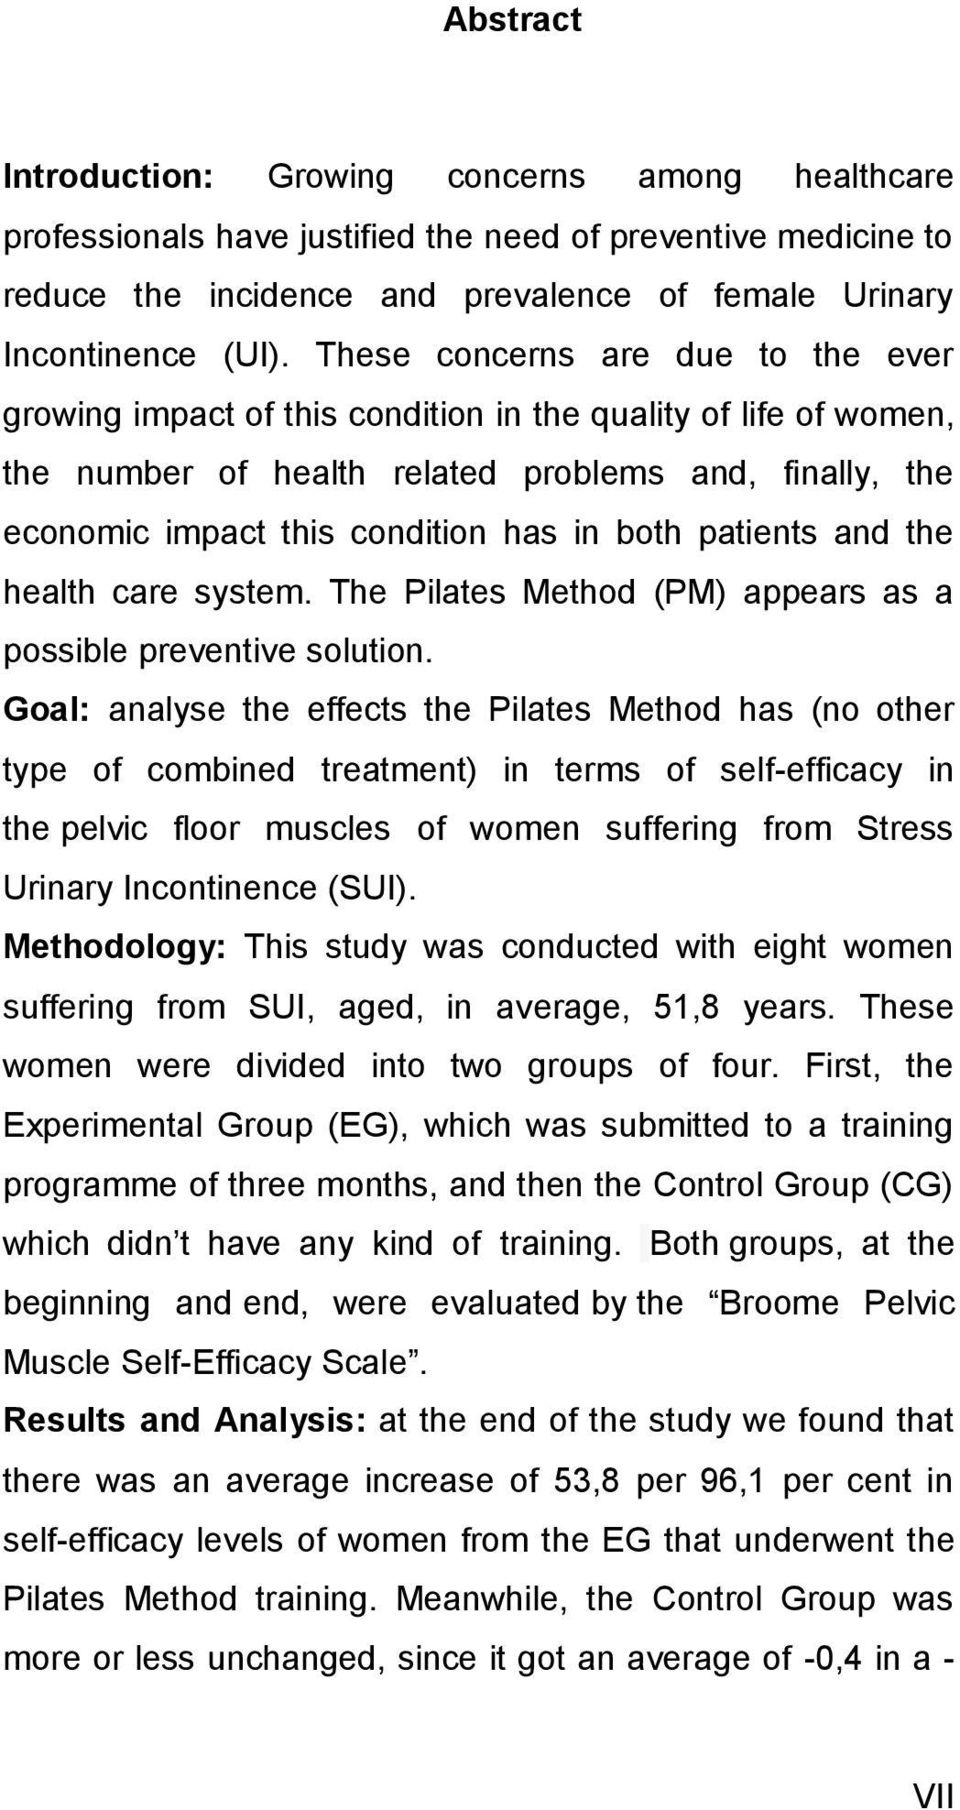 patients and the health care system. The Pilates Method (PM) appears as a possible preventive solution.